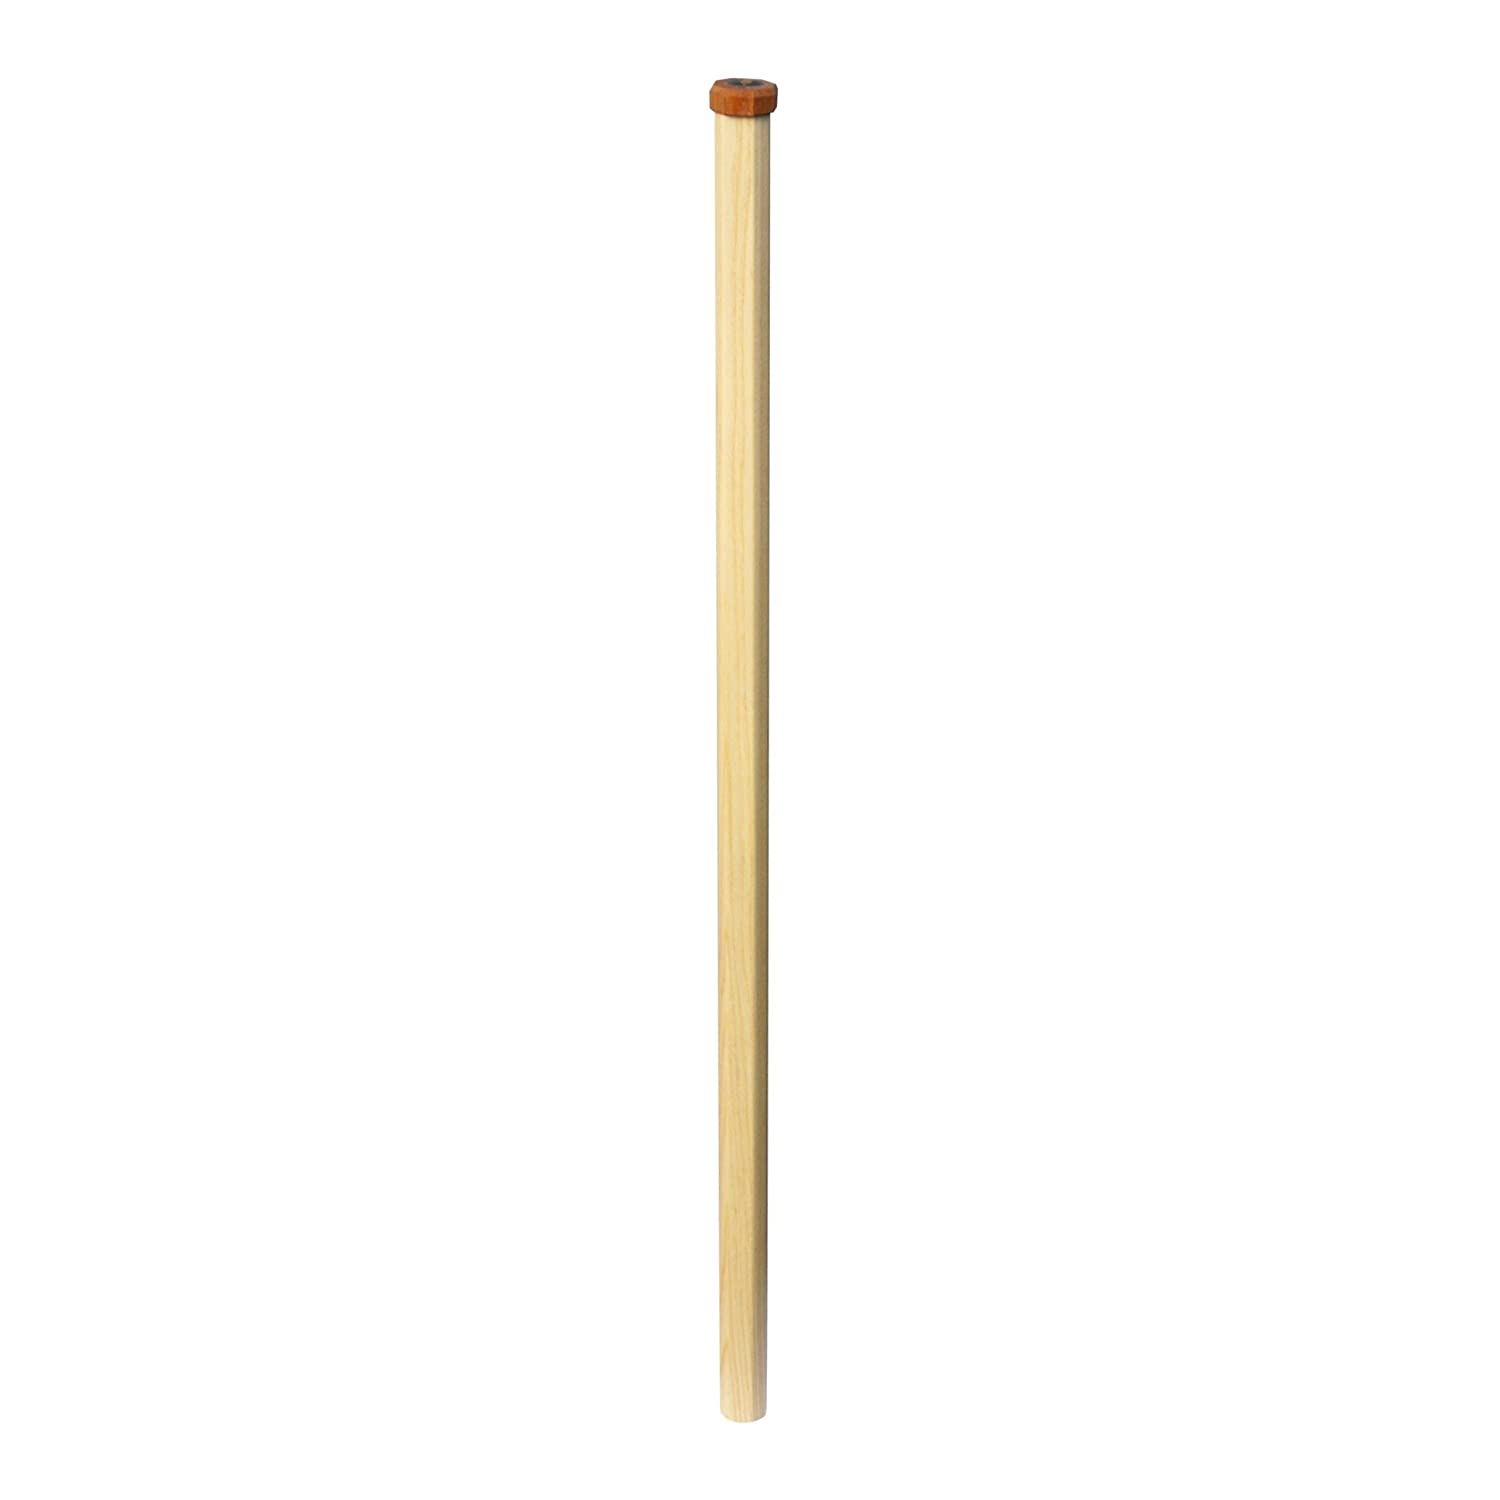 Lacrosse Shaft, Stick, Handle: Blackfeet Solid Ash Wood Attack FEATHERWEIGHT - Natural